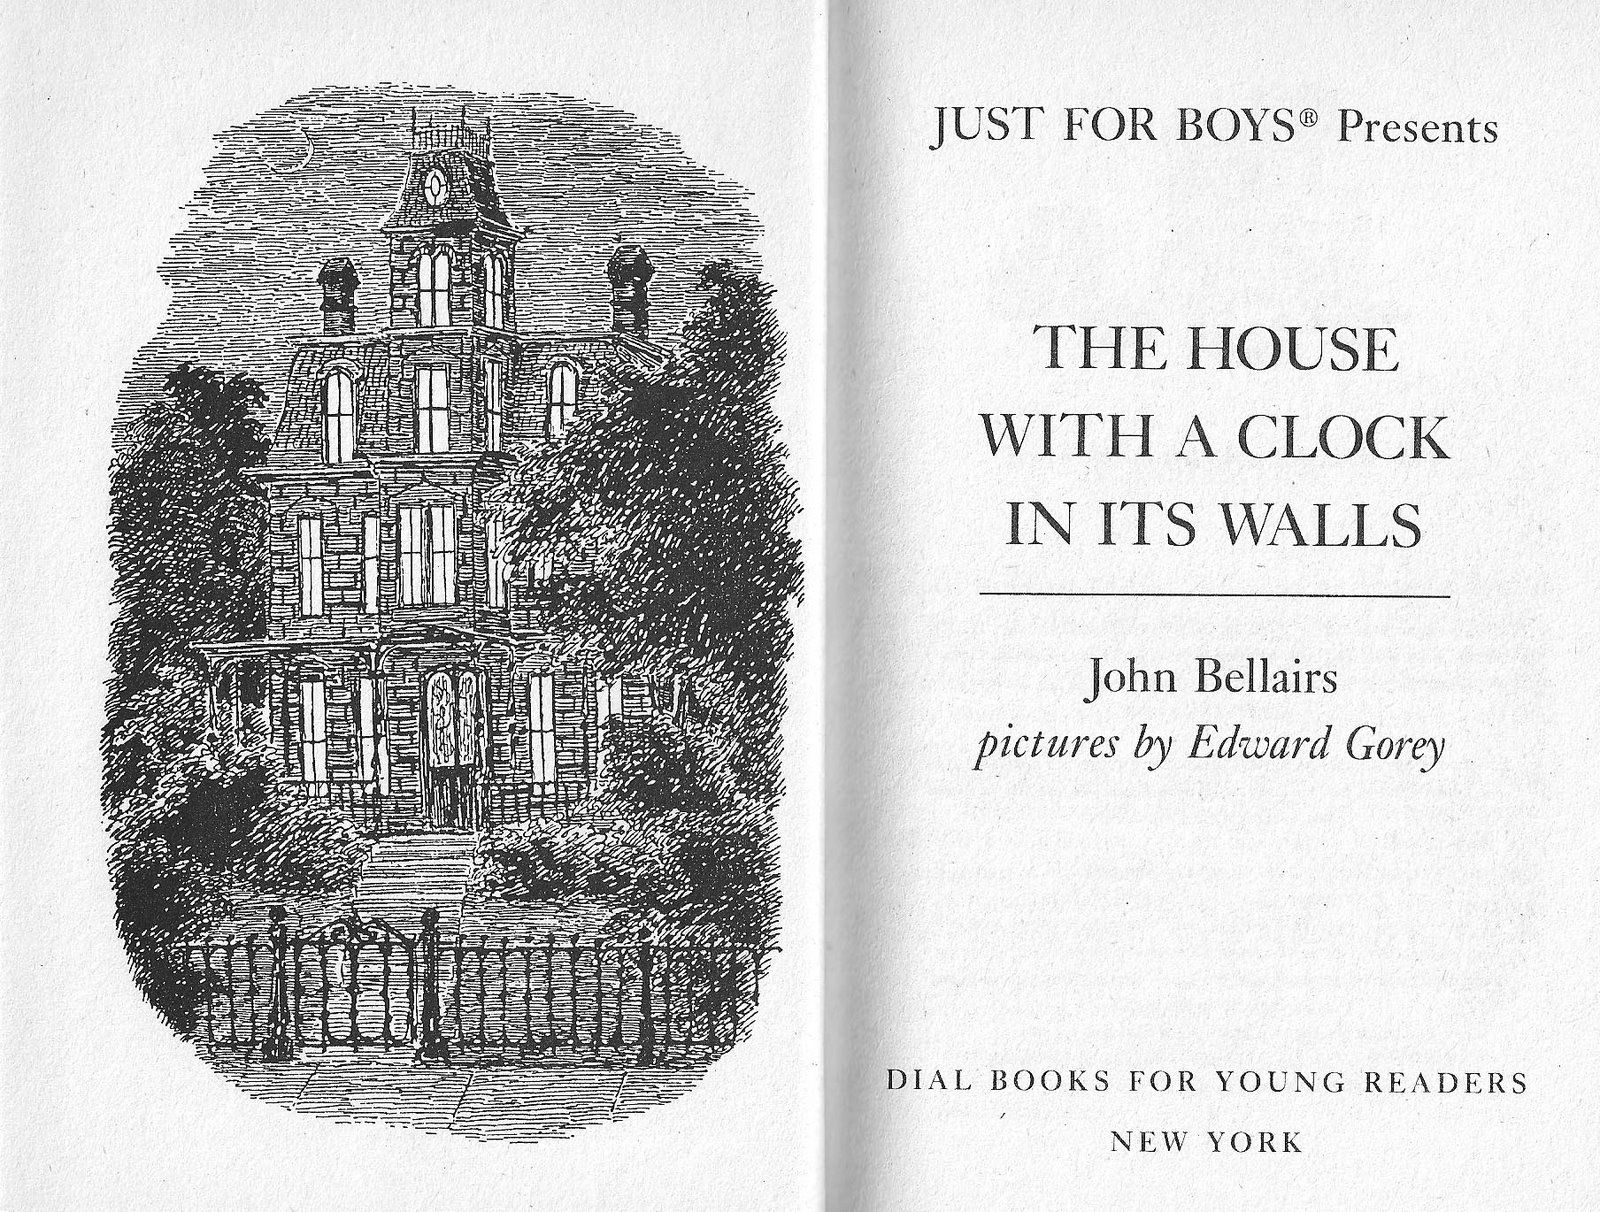 Edward Gorey Frontispiece For The House With A Clock In Its Walls By John Bellairs Edward Gorey Presents For Boys Favorite Books